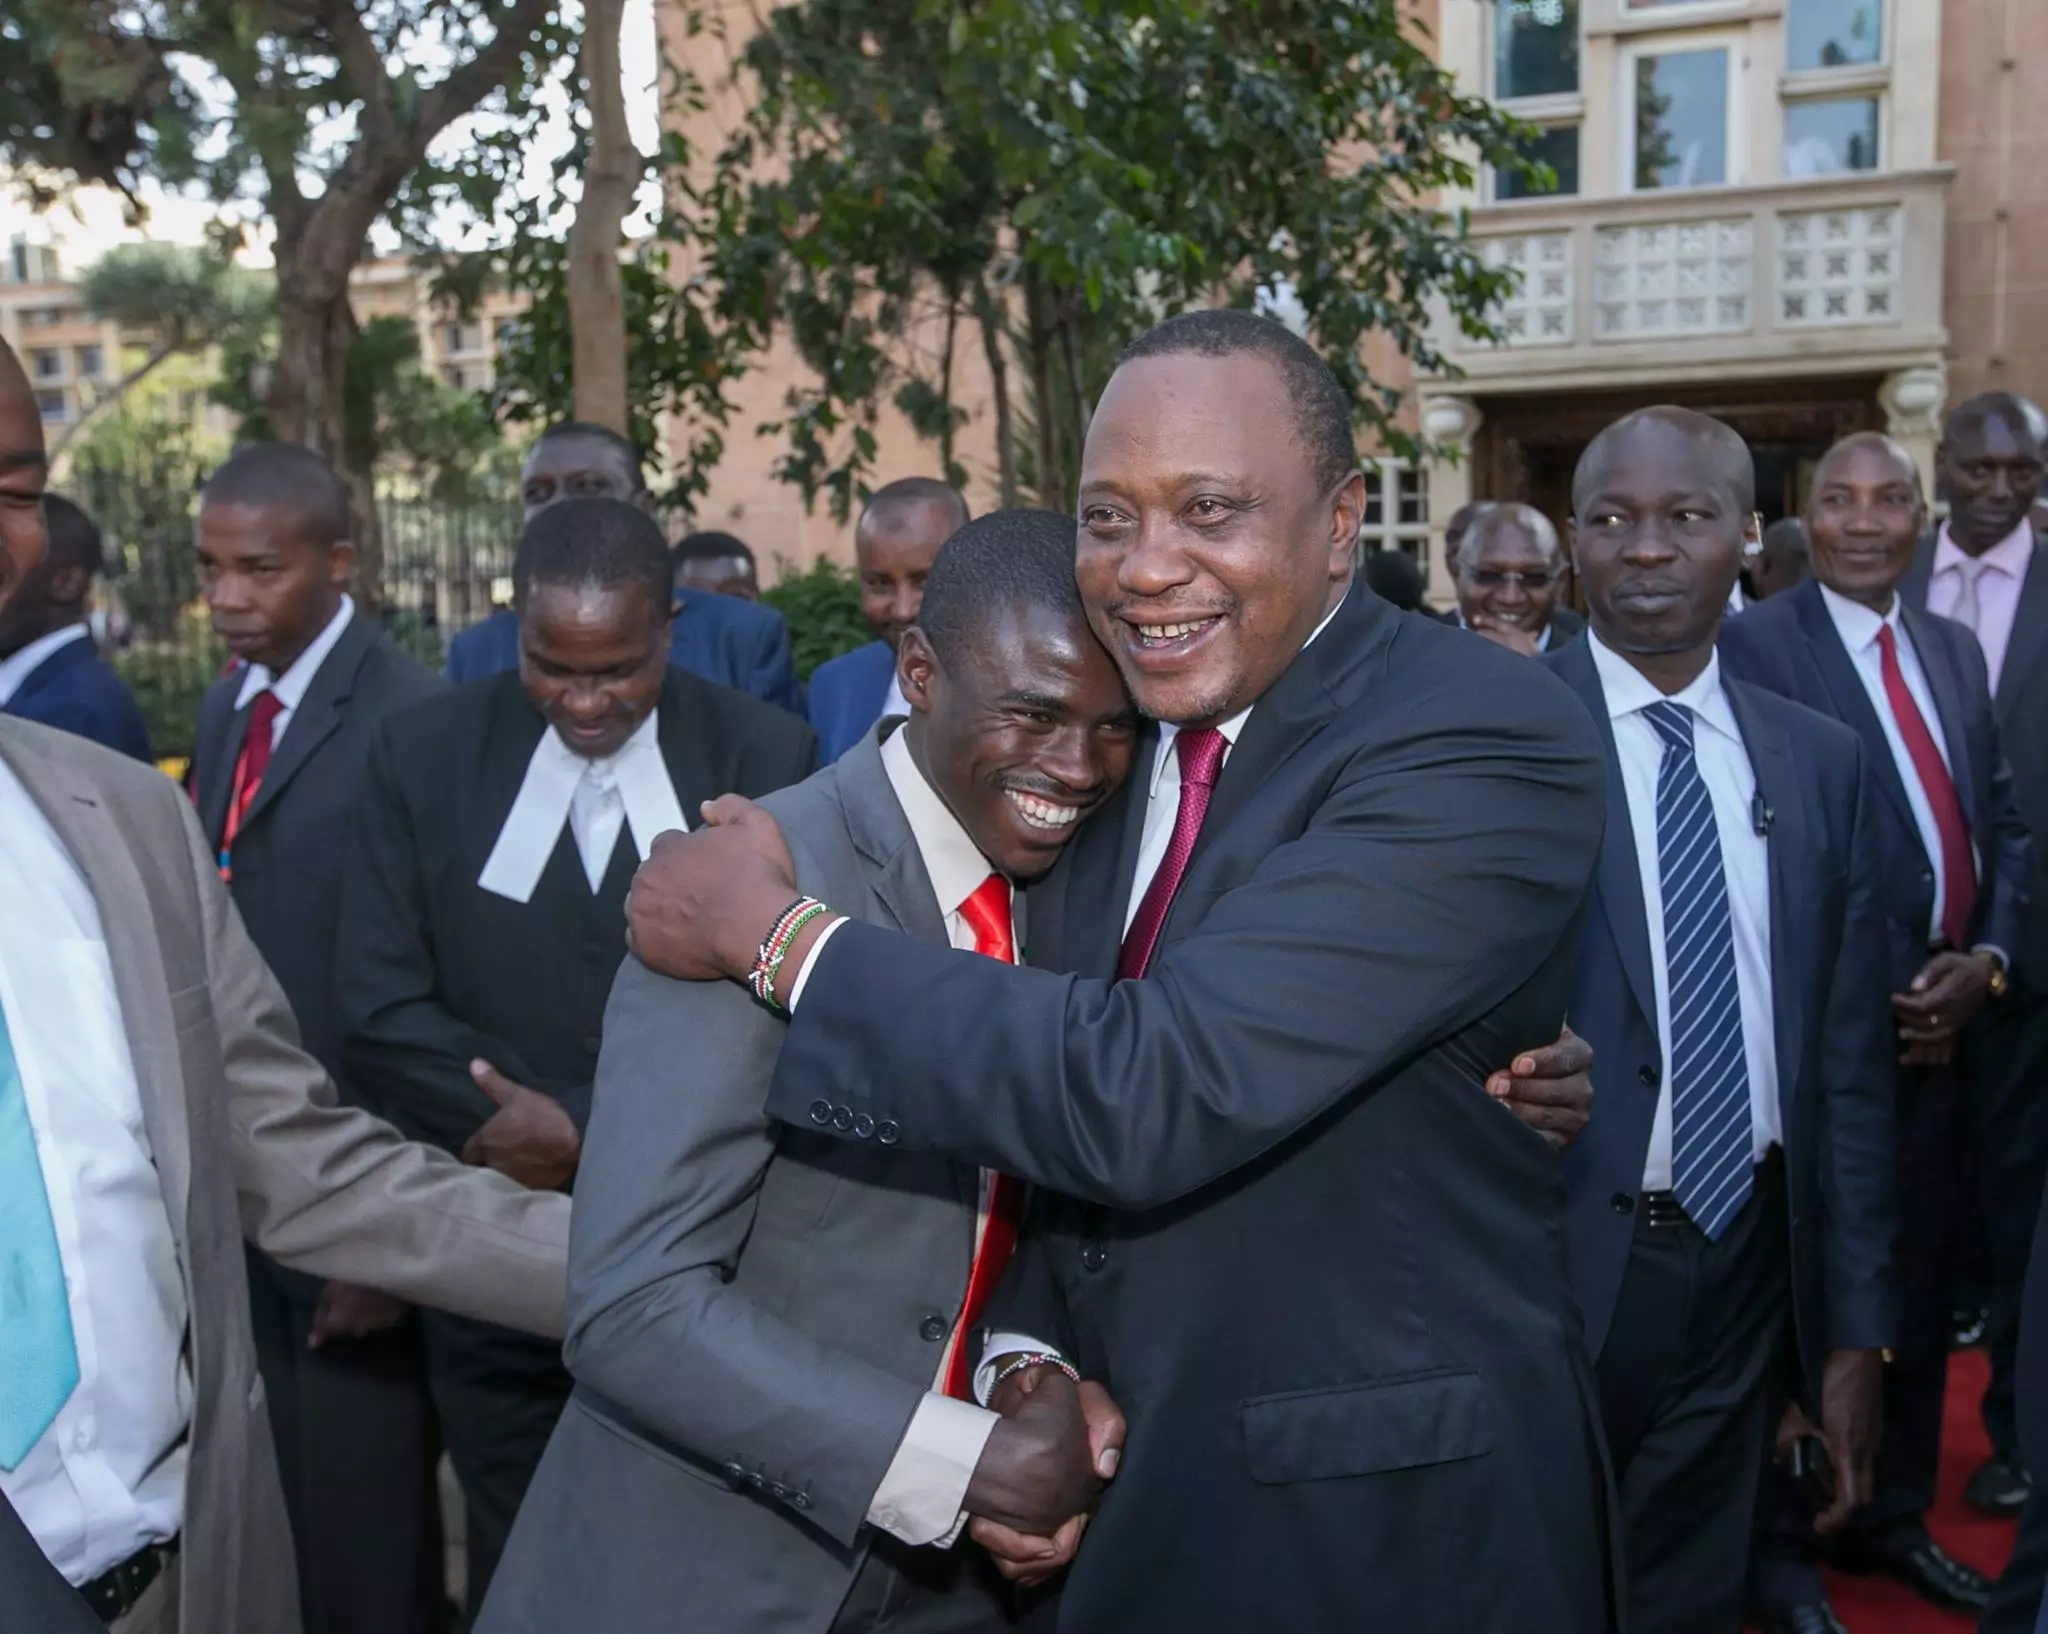 Kenya's repeat election: Good for democracy or bad?